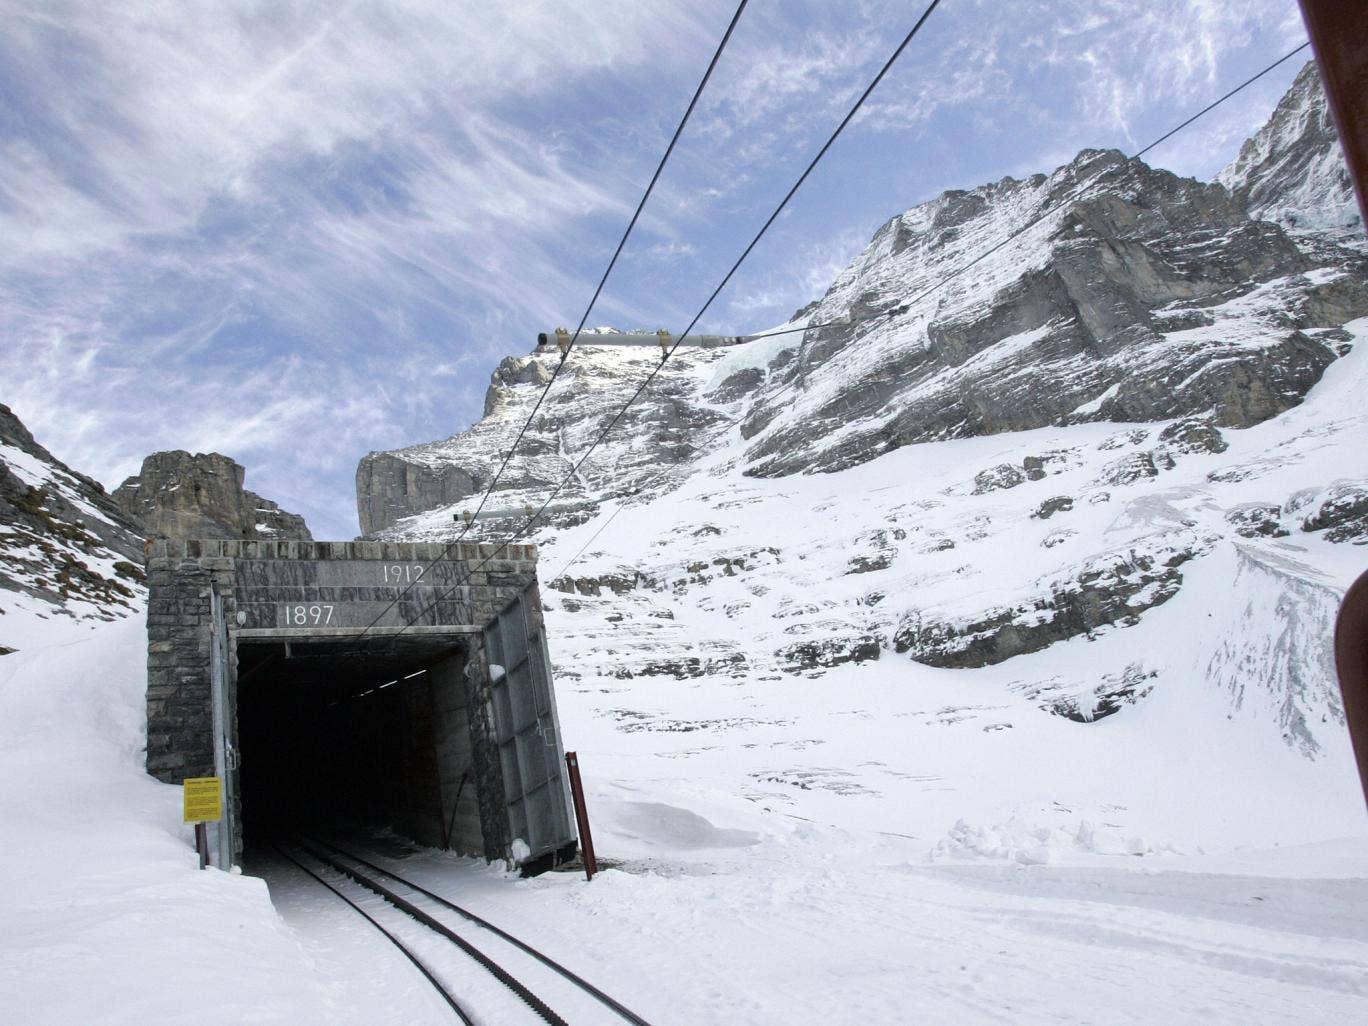 On track: Consider taking the train to the Alps